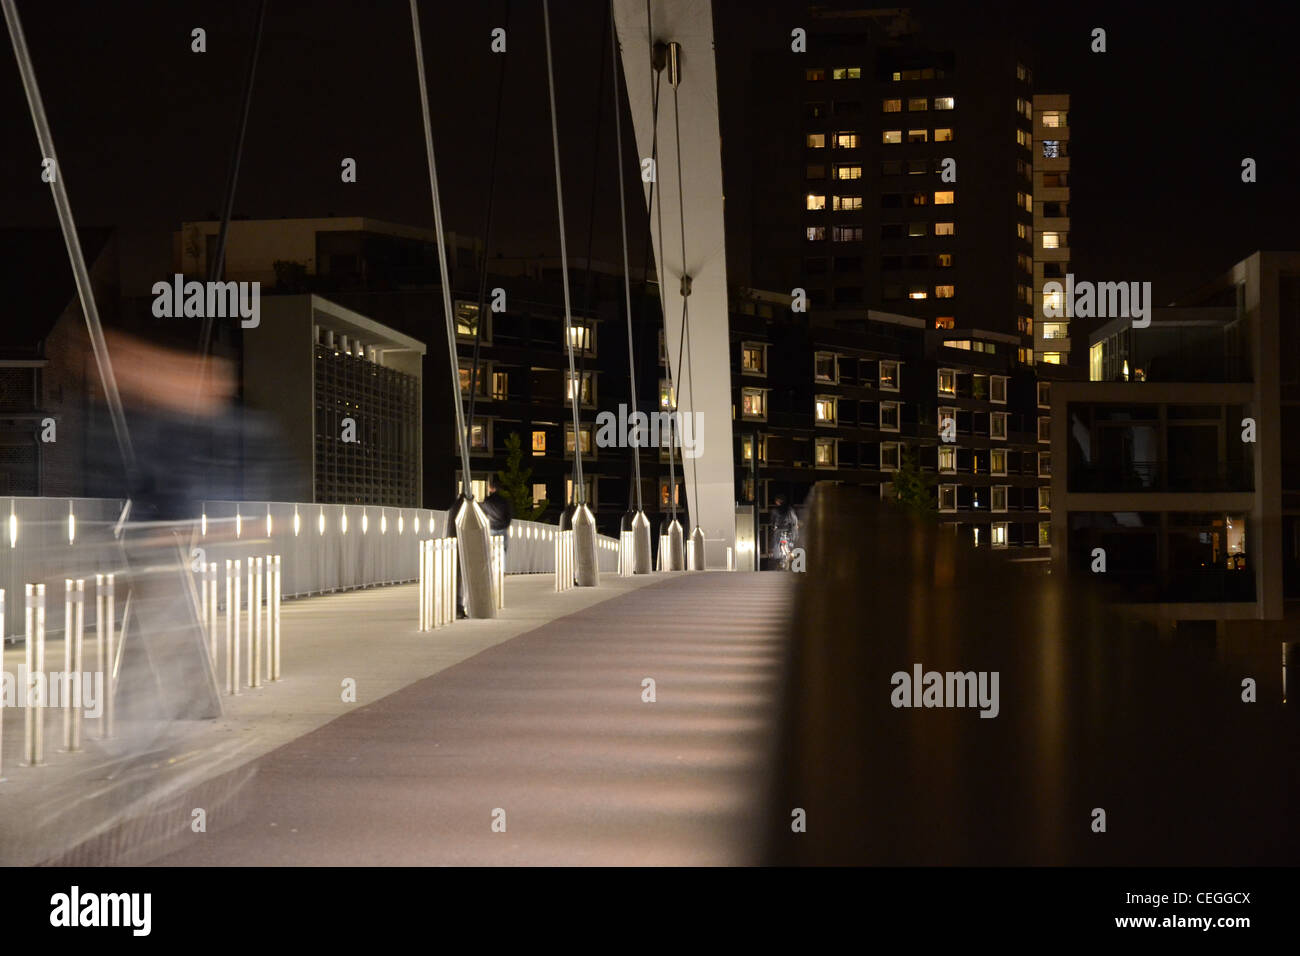 Hoge Brug in Maastricht, the Netherlands at night. Lights from the Ceramique in the background - Stock Image